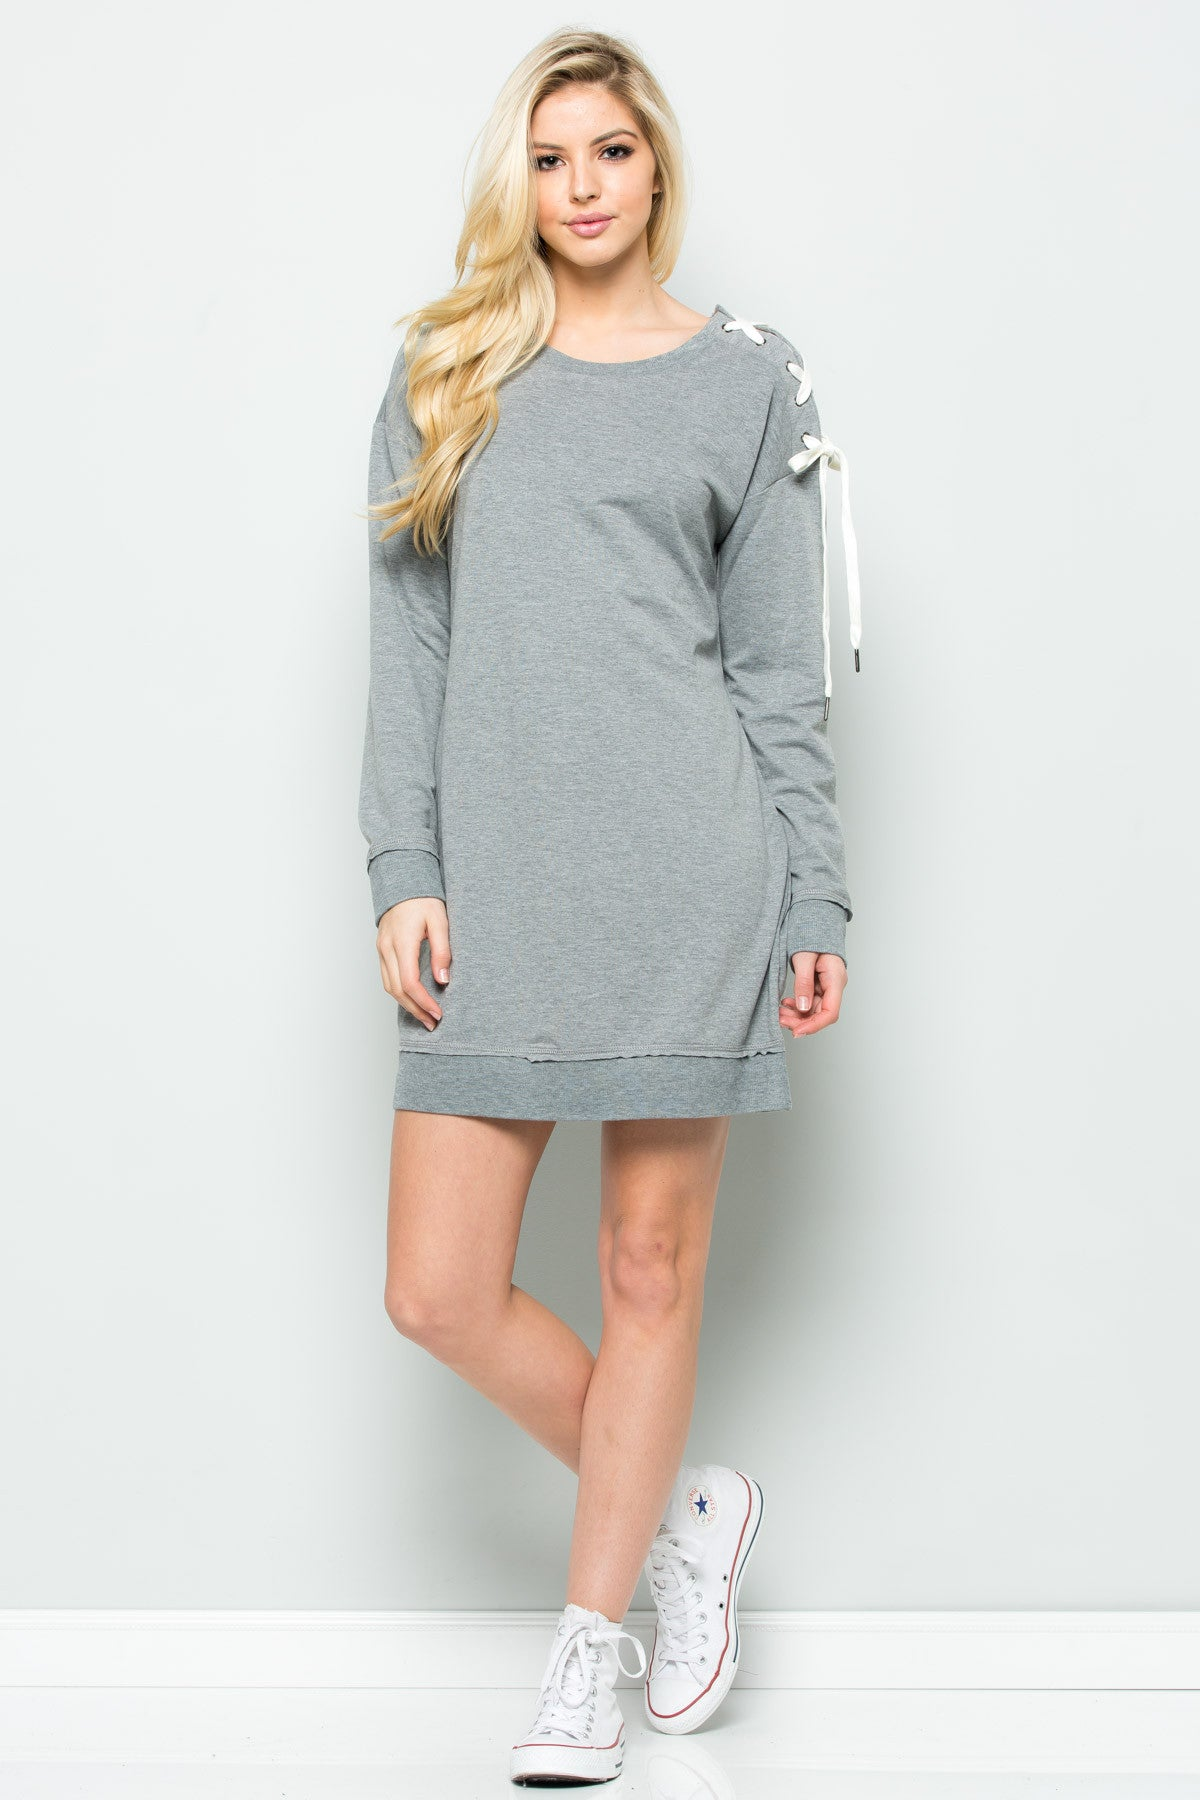 Shoulder Lace Up Sweater Dress in Heather Grey - Dresses - My Yuccie - 2